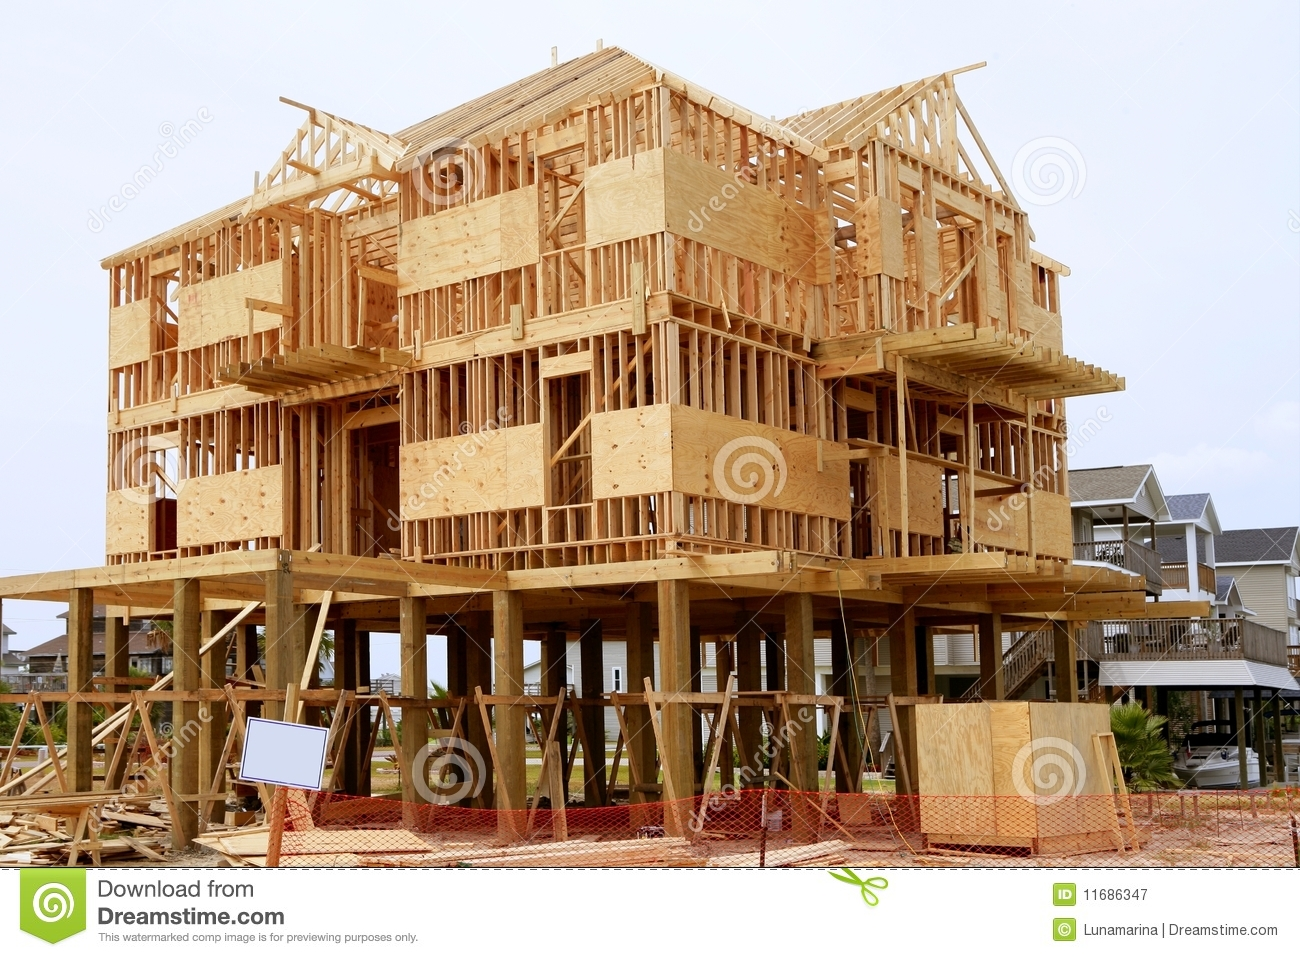 wood-house-contruction-american-wooden-structure-11686347.jpg